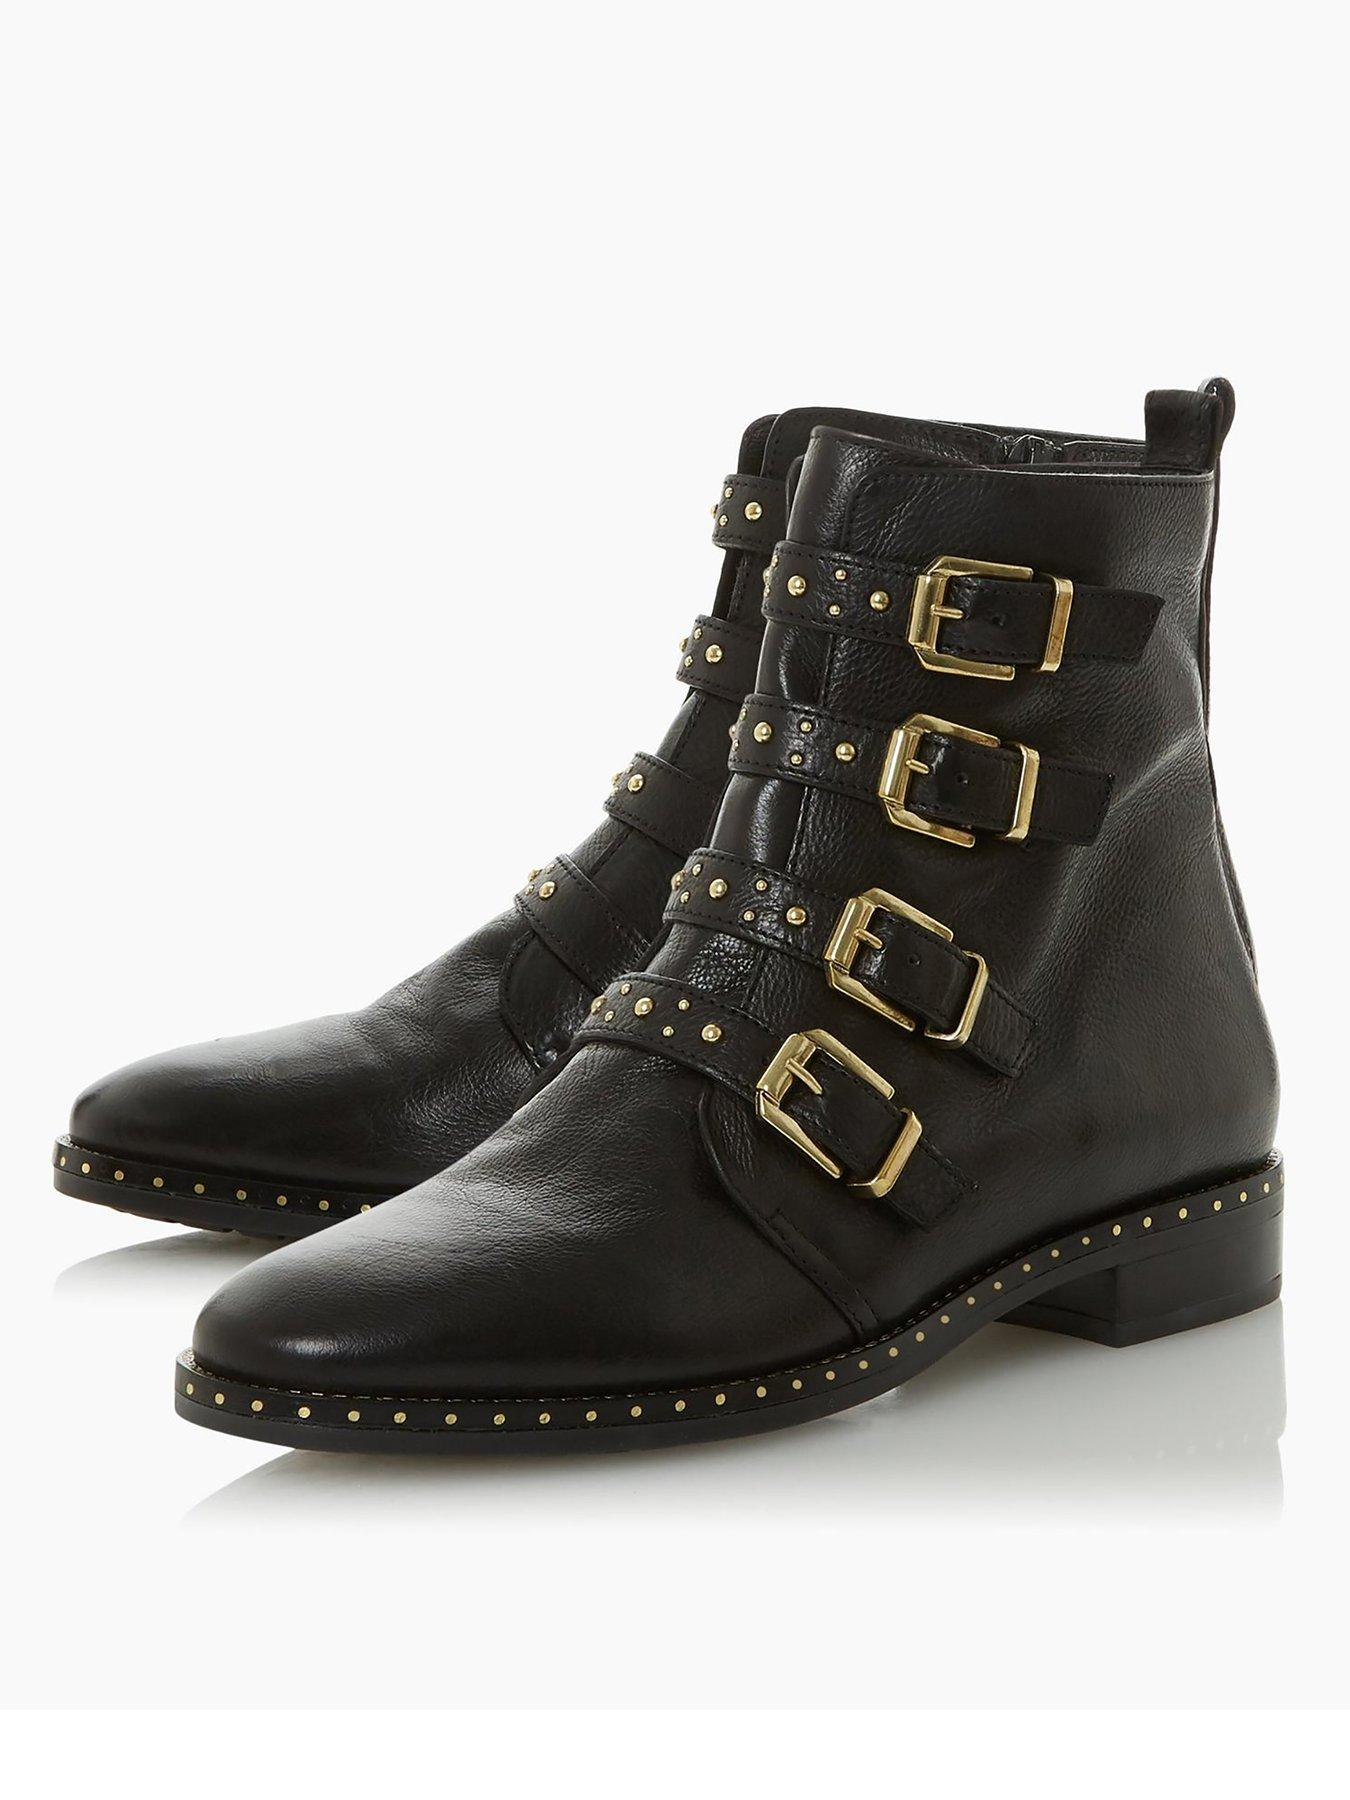 Womens Boots   Winter Boots   Very.co.uk